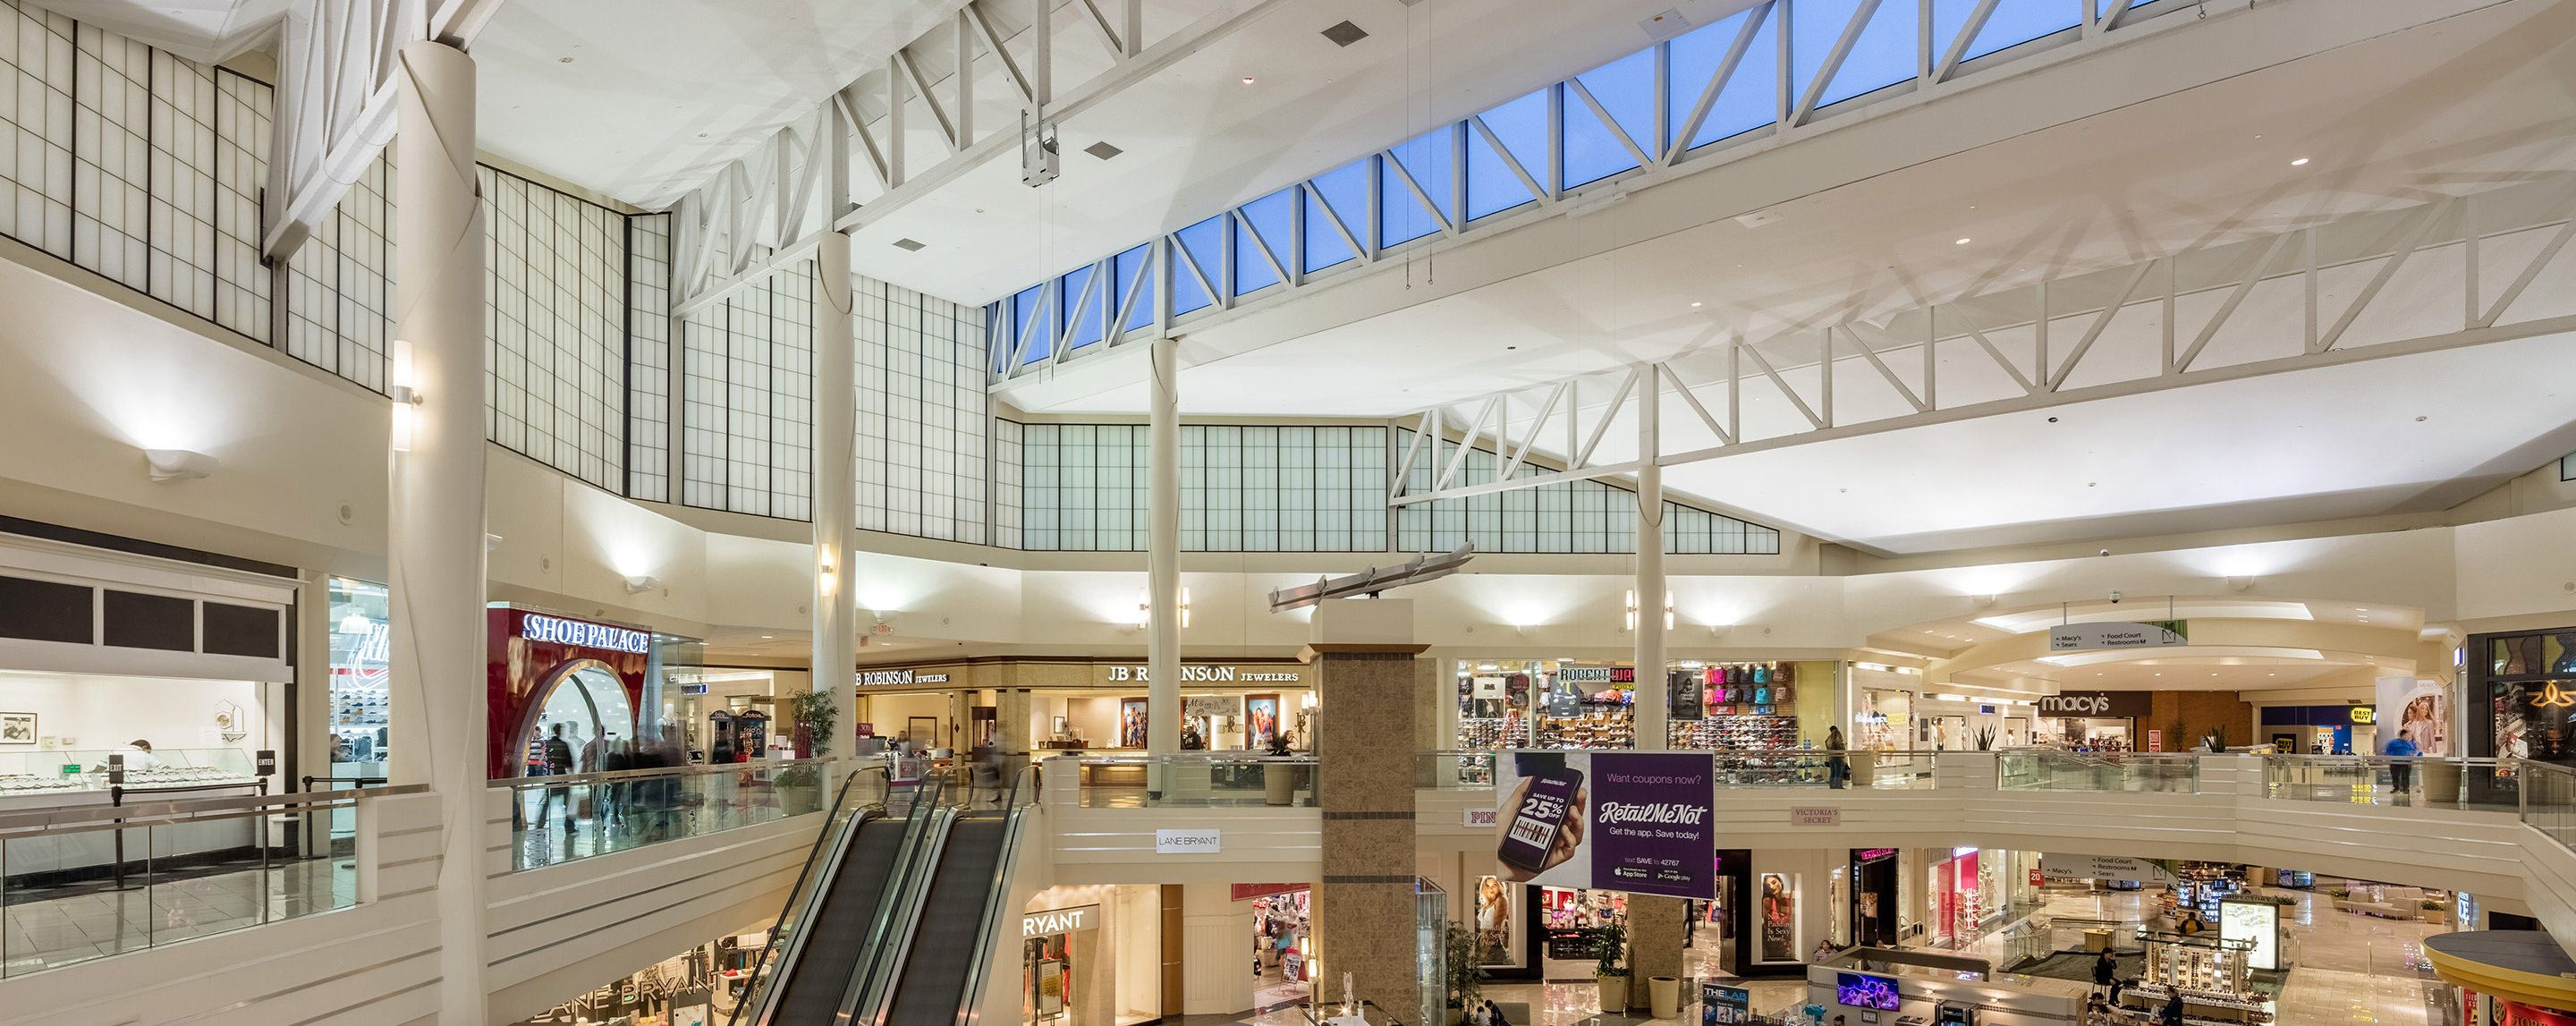 A large indoor mall has two floors and a couple of escalators leading to the top.  There is a large